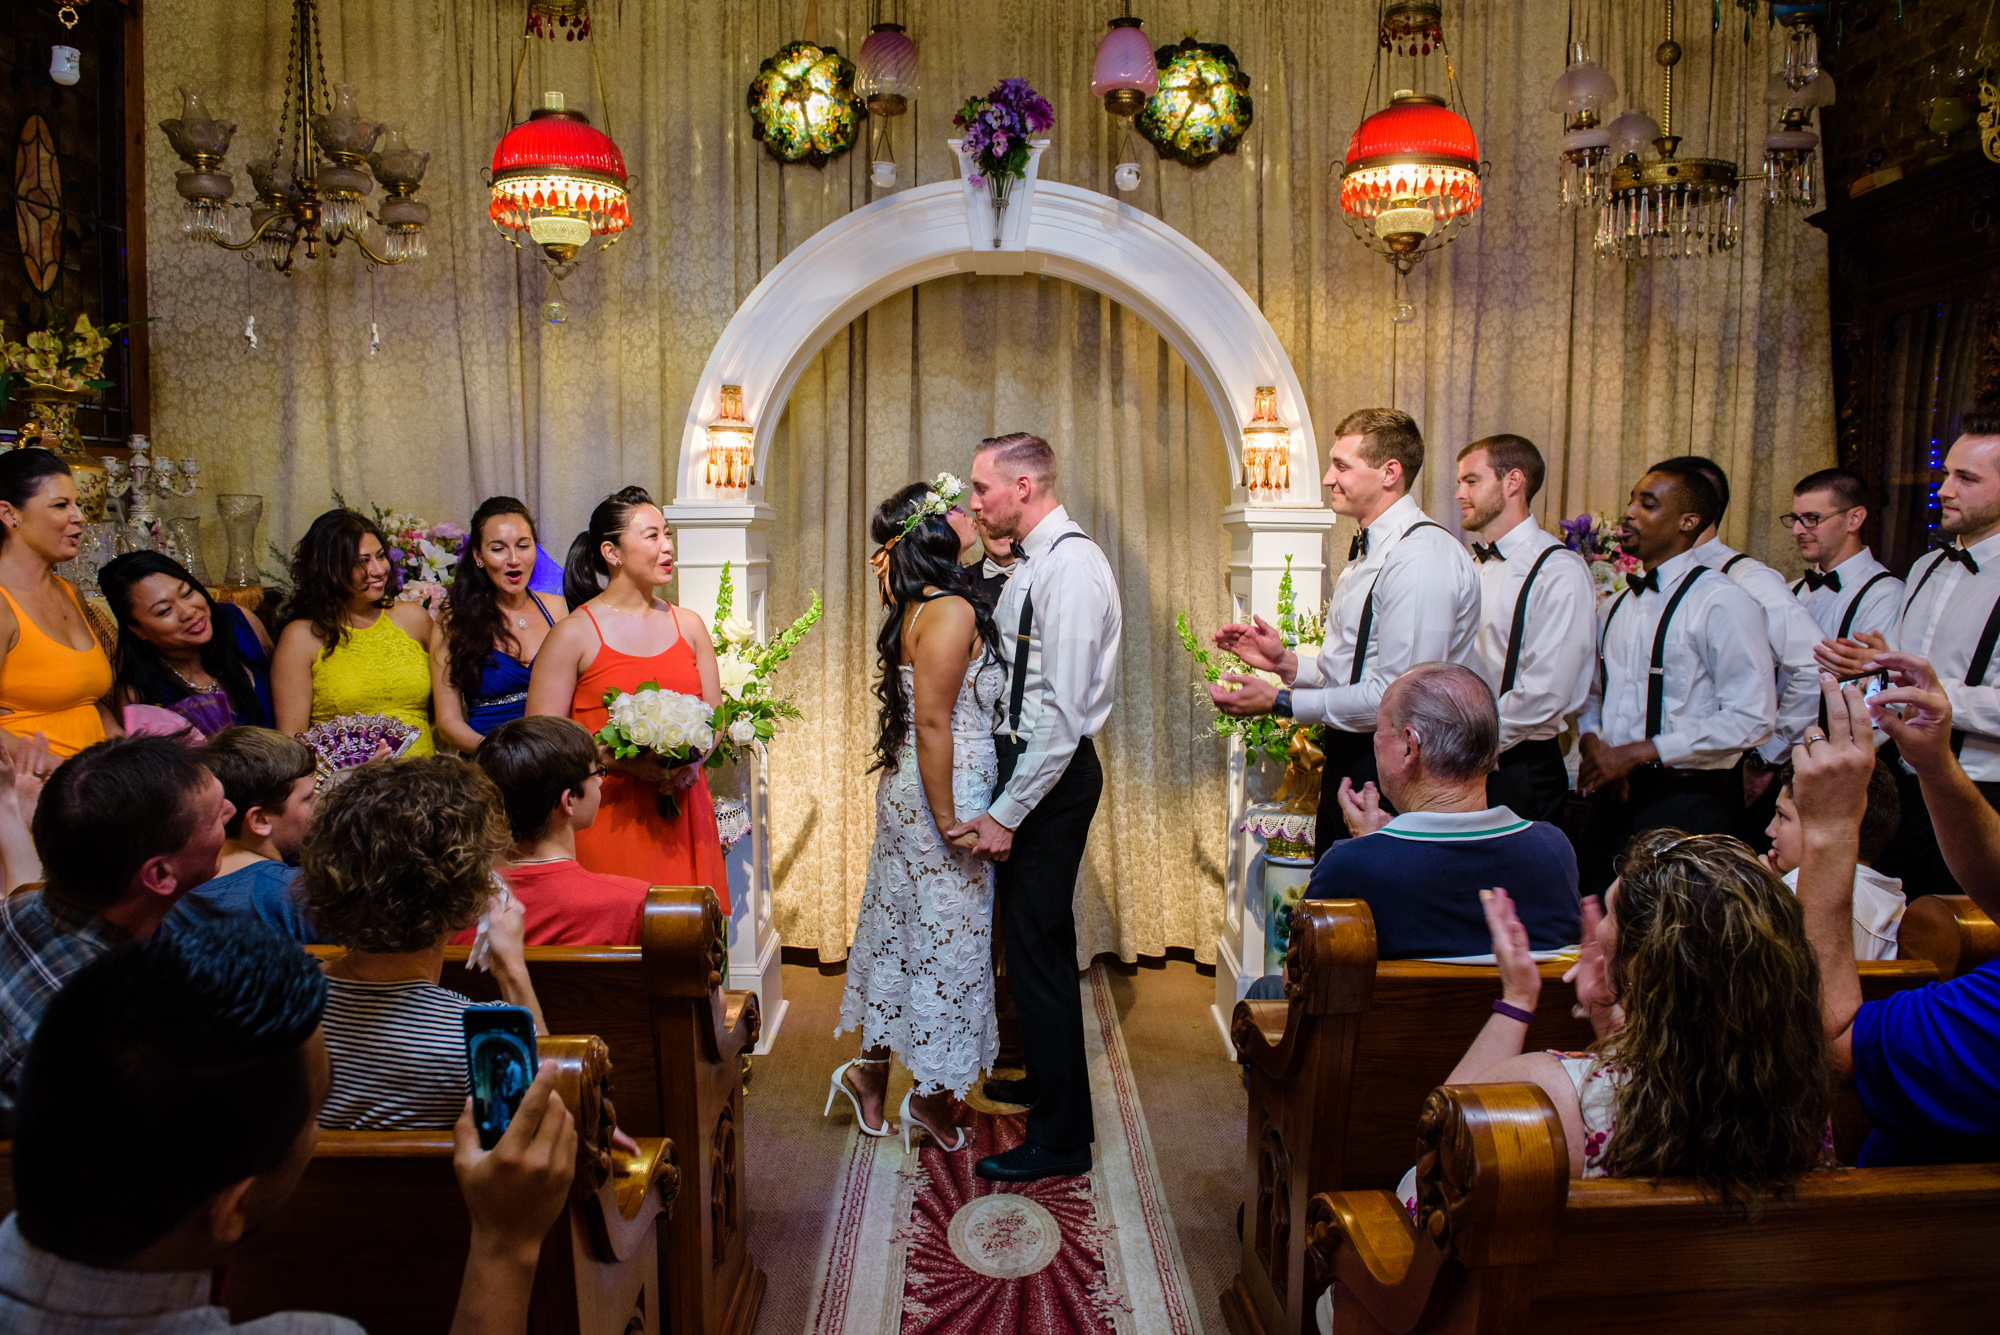 French Quarter wedding sealed with a kiss.